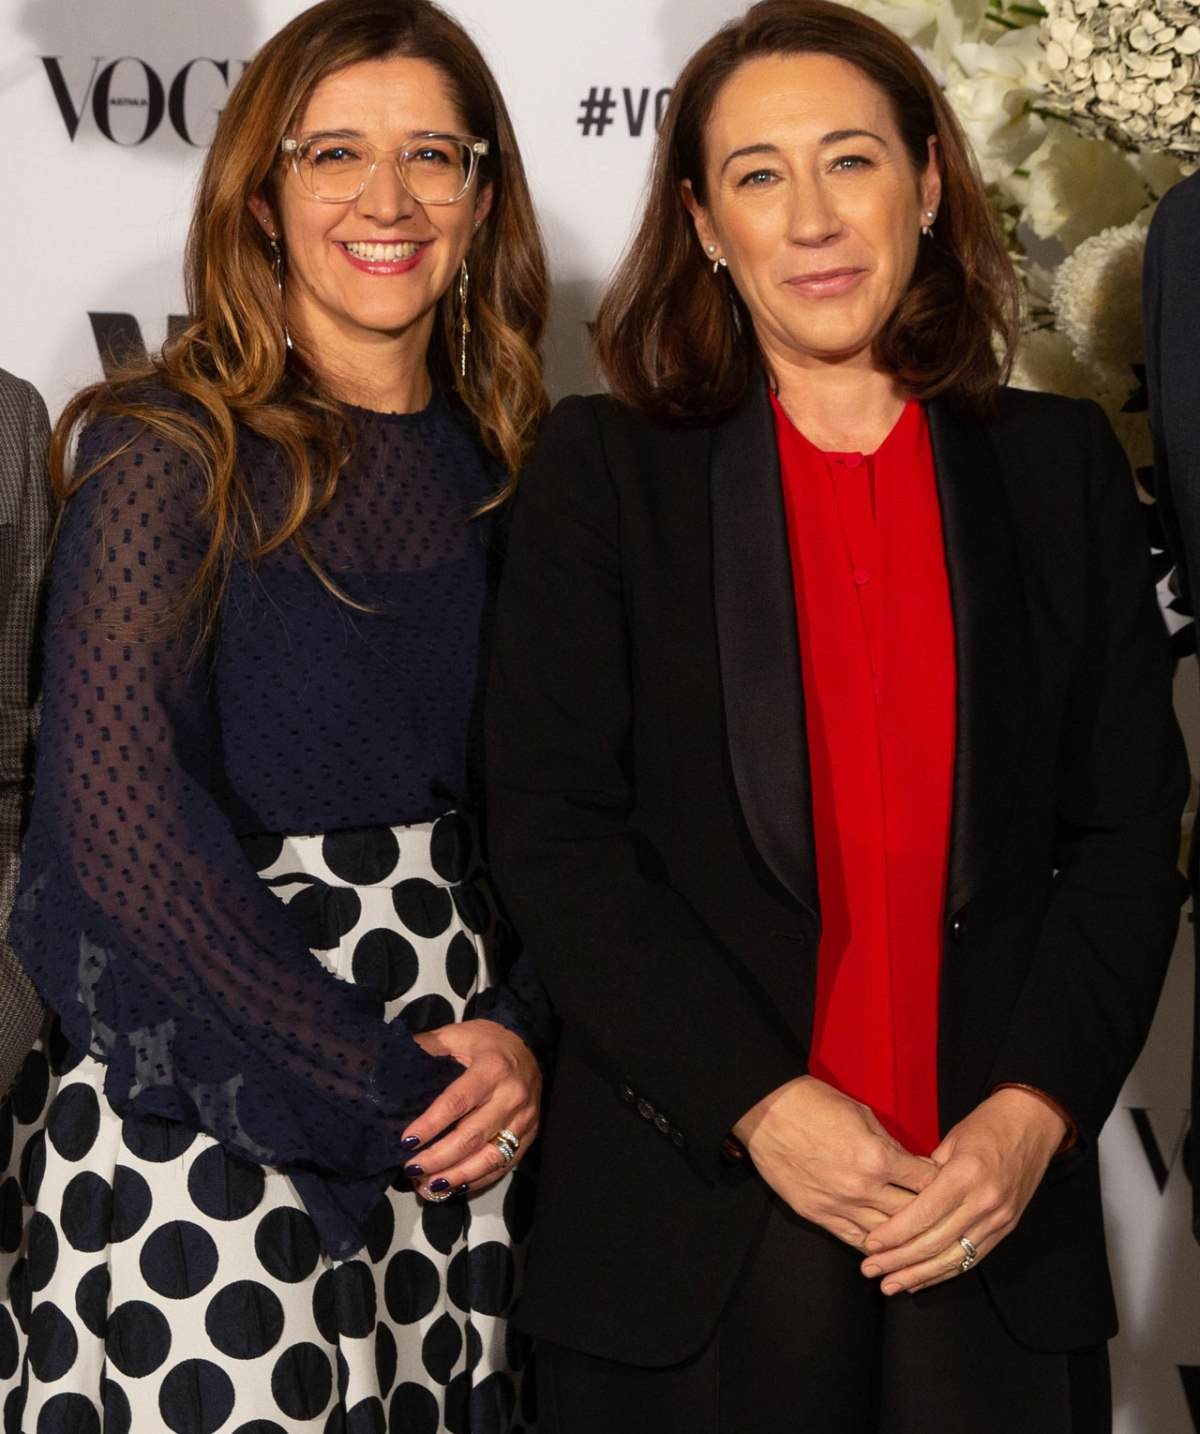 Vogue's Edwina McCann and Westpac's Anastasia Cammaroto on how they inspire women to pursue STEM